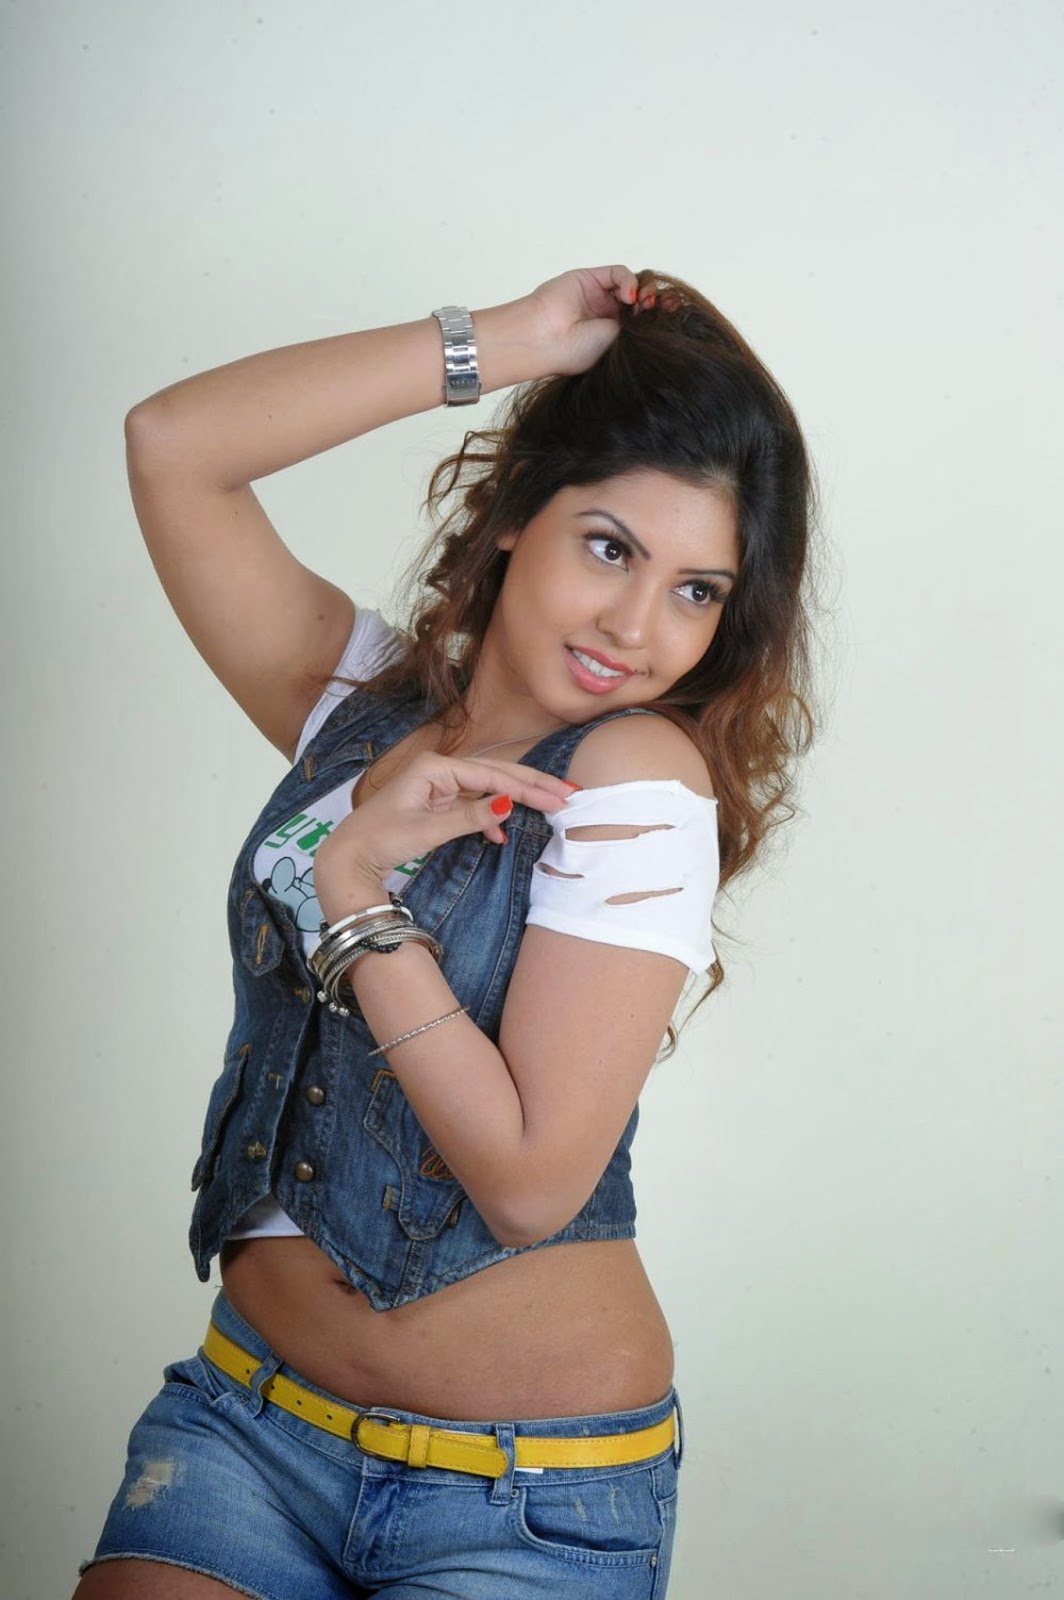 Komal jha jeanse short skirt hot wallpapers